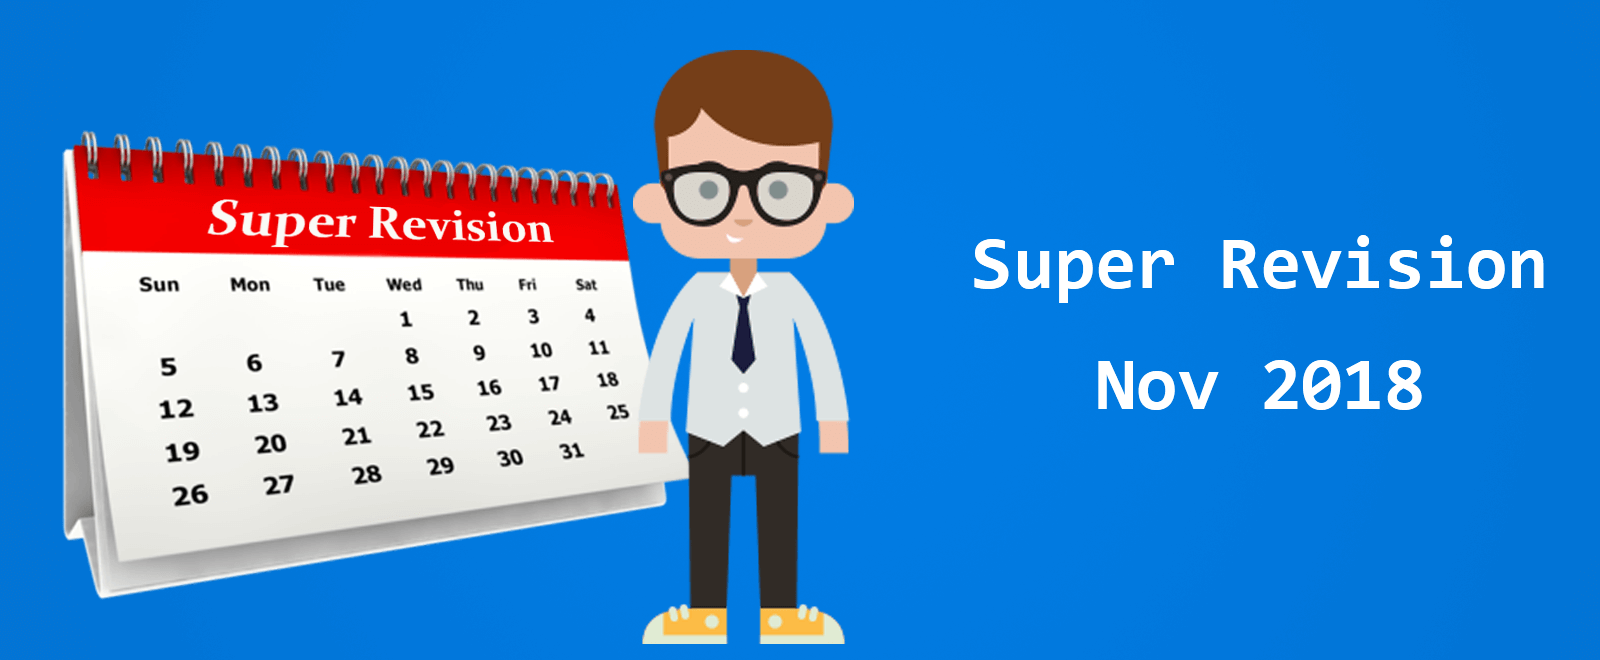 Super Revision Schedule for CA Inter Nov 2018